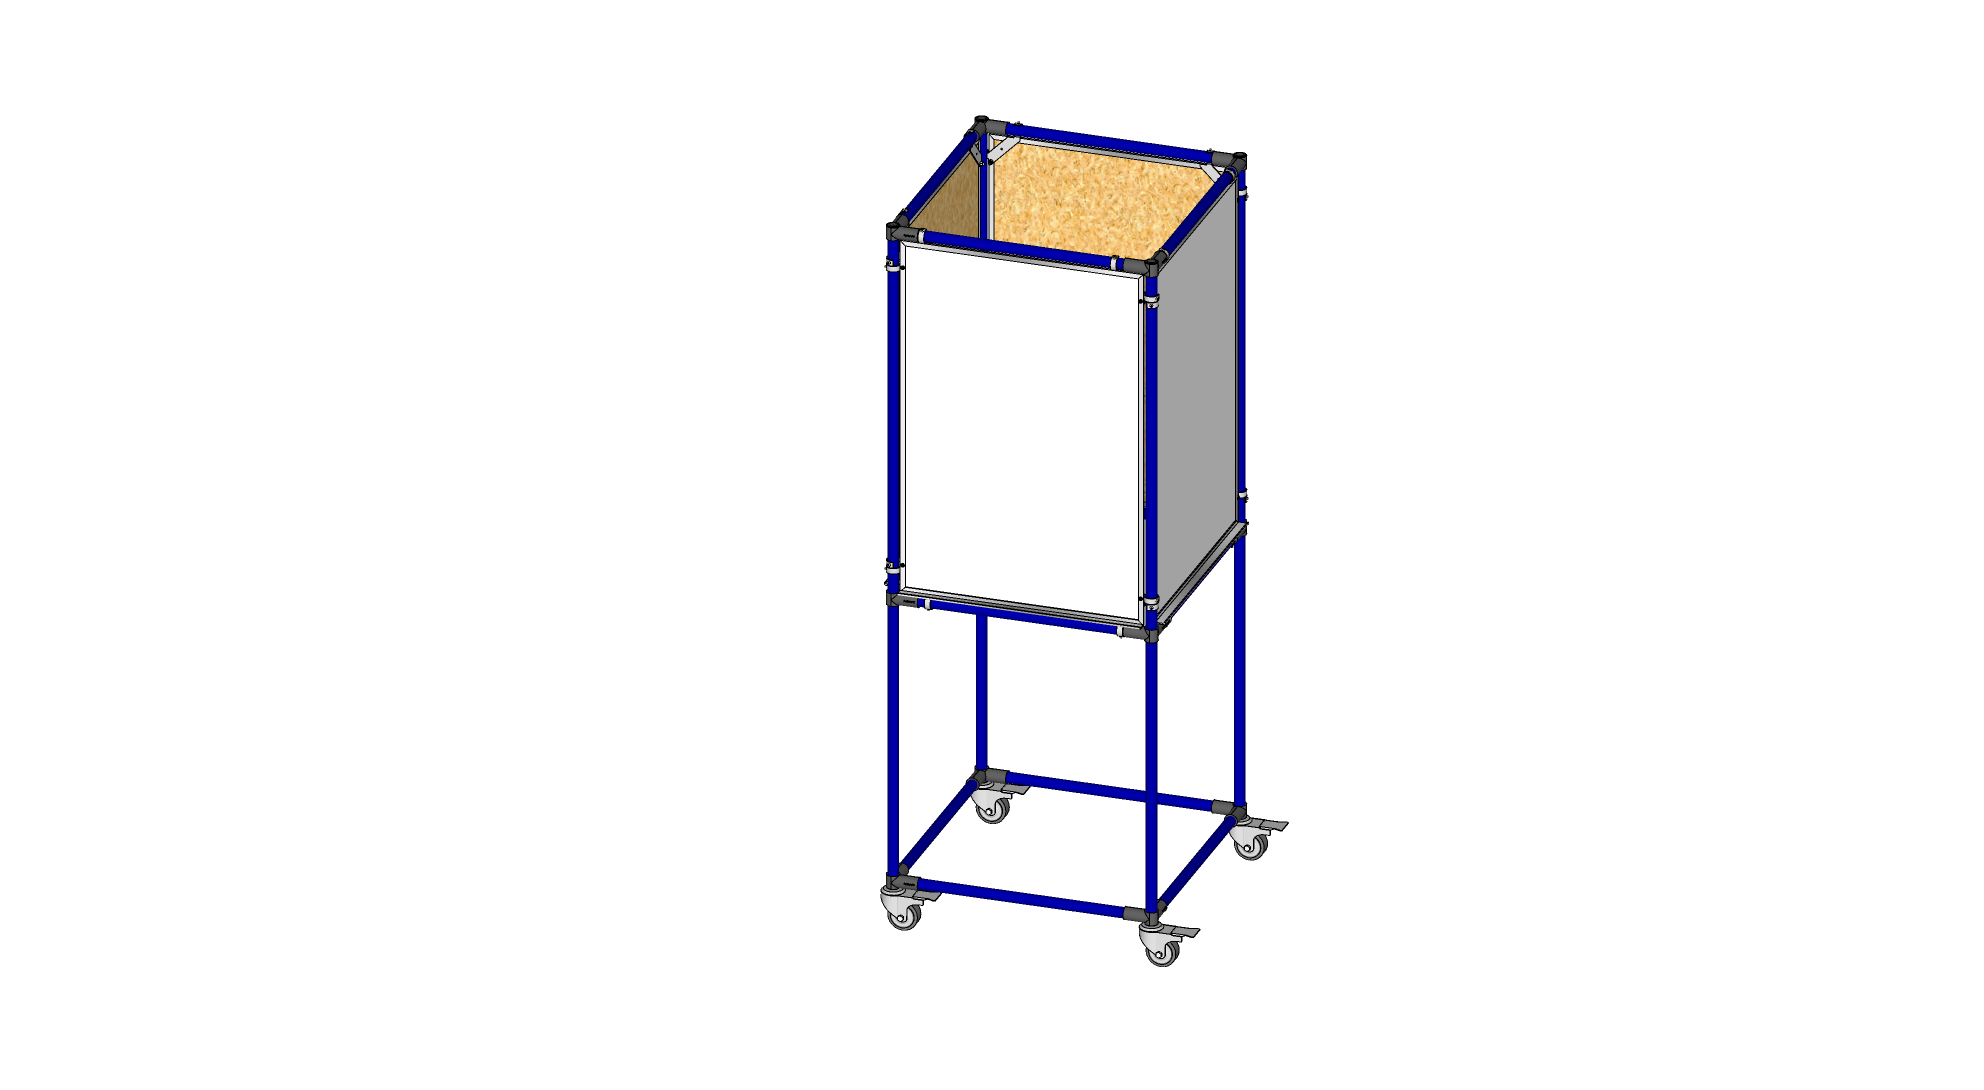 4 Sided 2' x 3' White Board